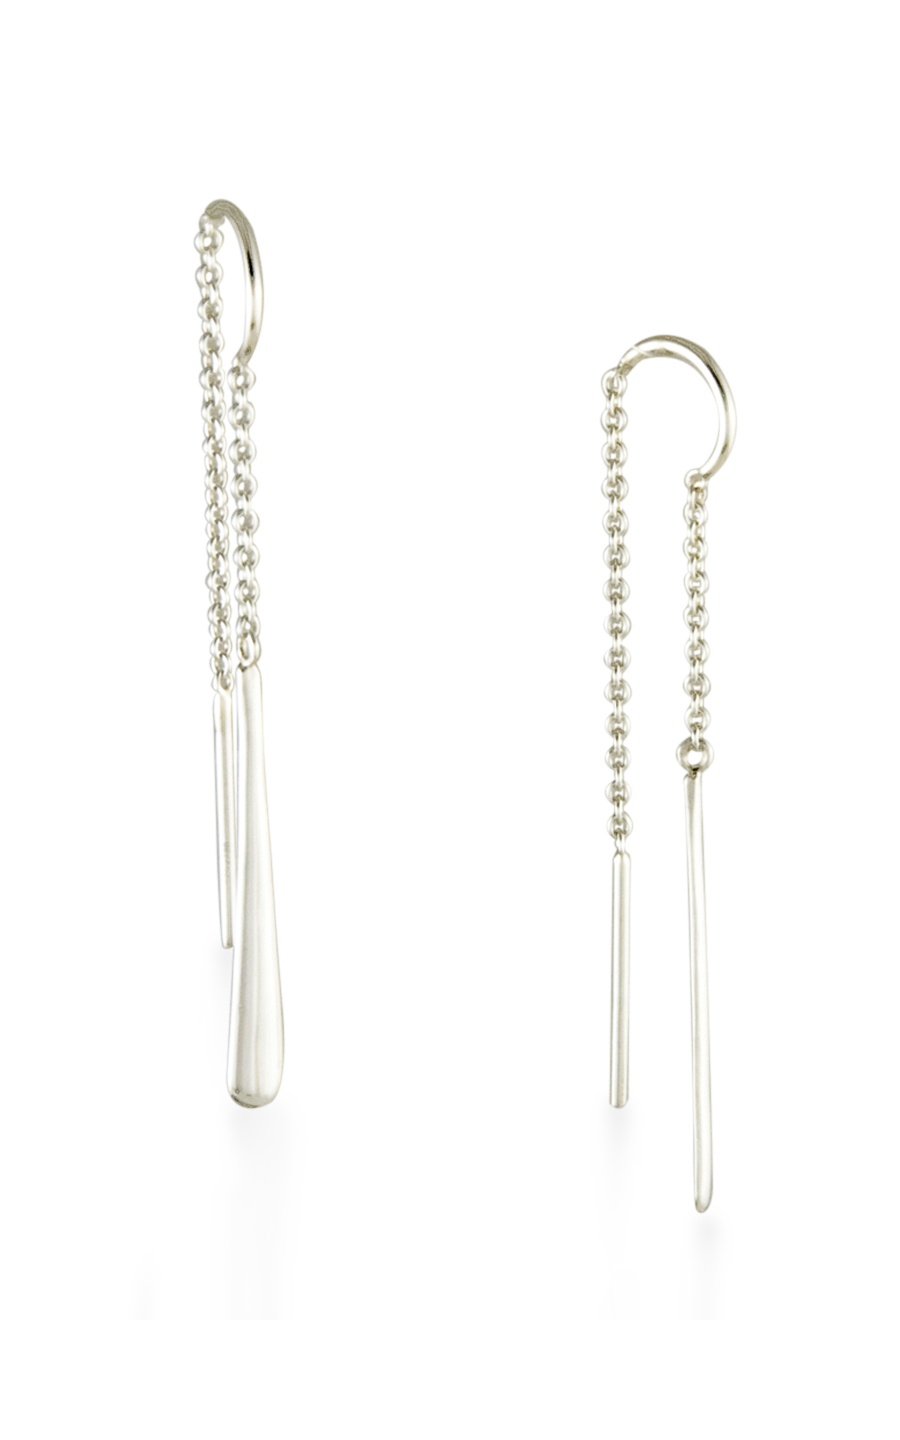 Zina Contemporary Earrings B294 product image